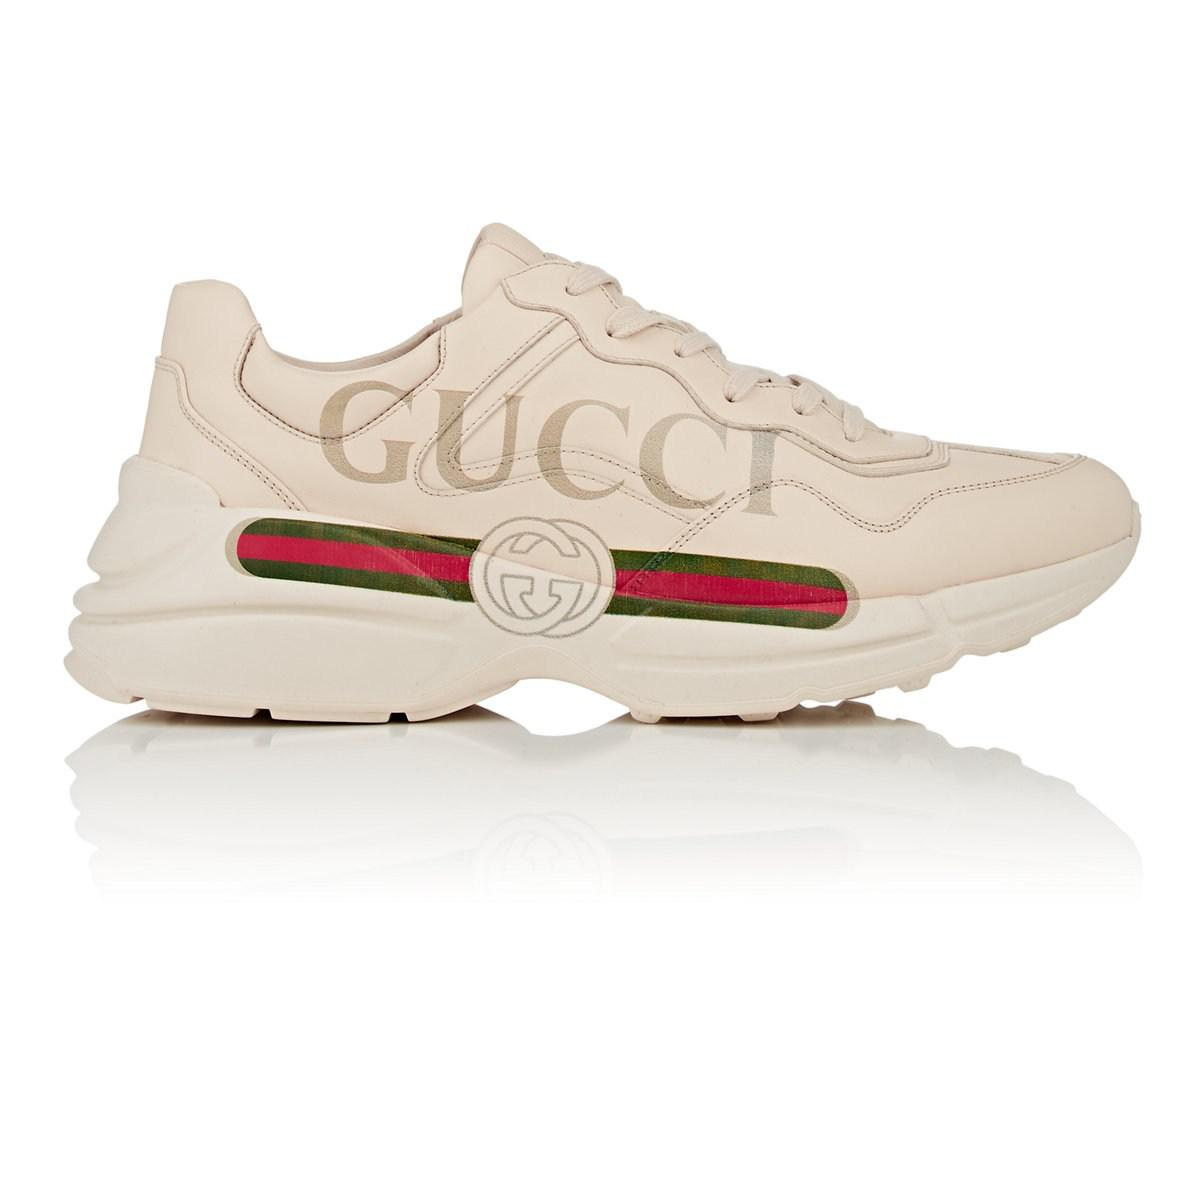 b5e221e7293 Gucci Rhyton Leather Sneakers in White for Men - Lyst